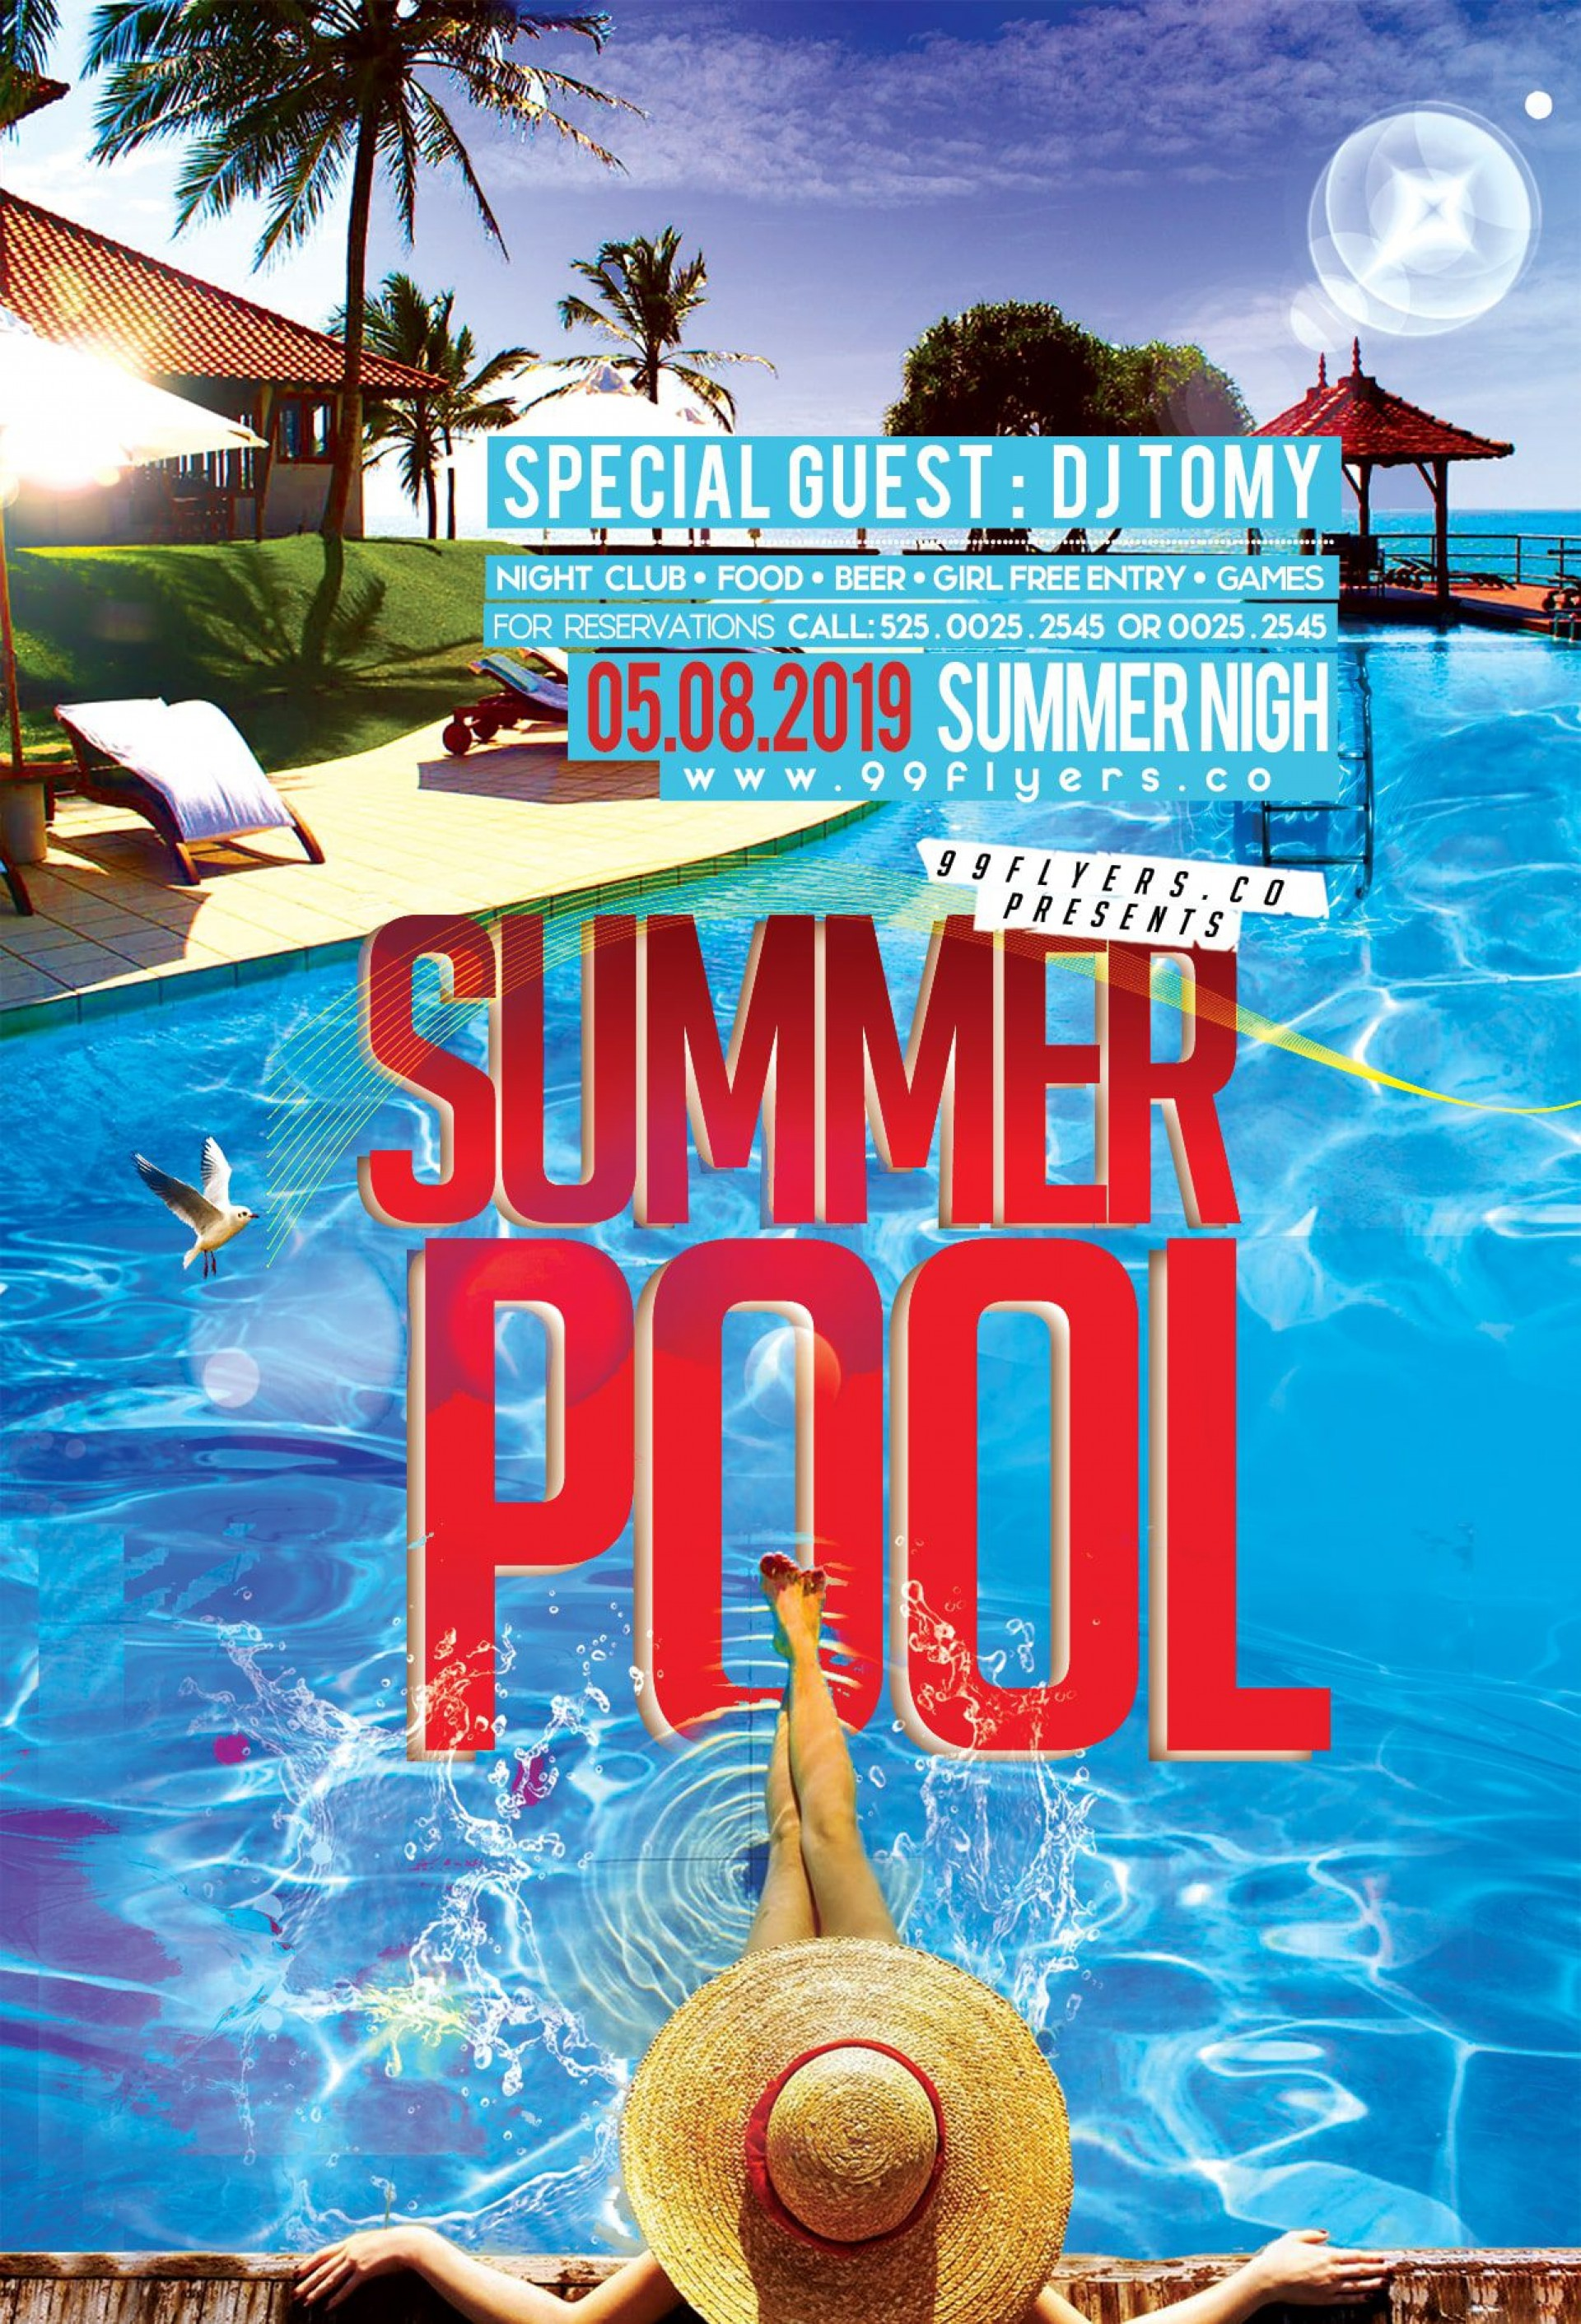 002 Impressive Free Pool Party Flyer Template Psd Concept  Photoshop1920